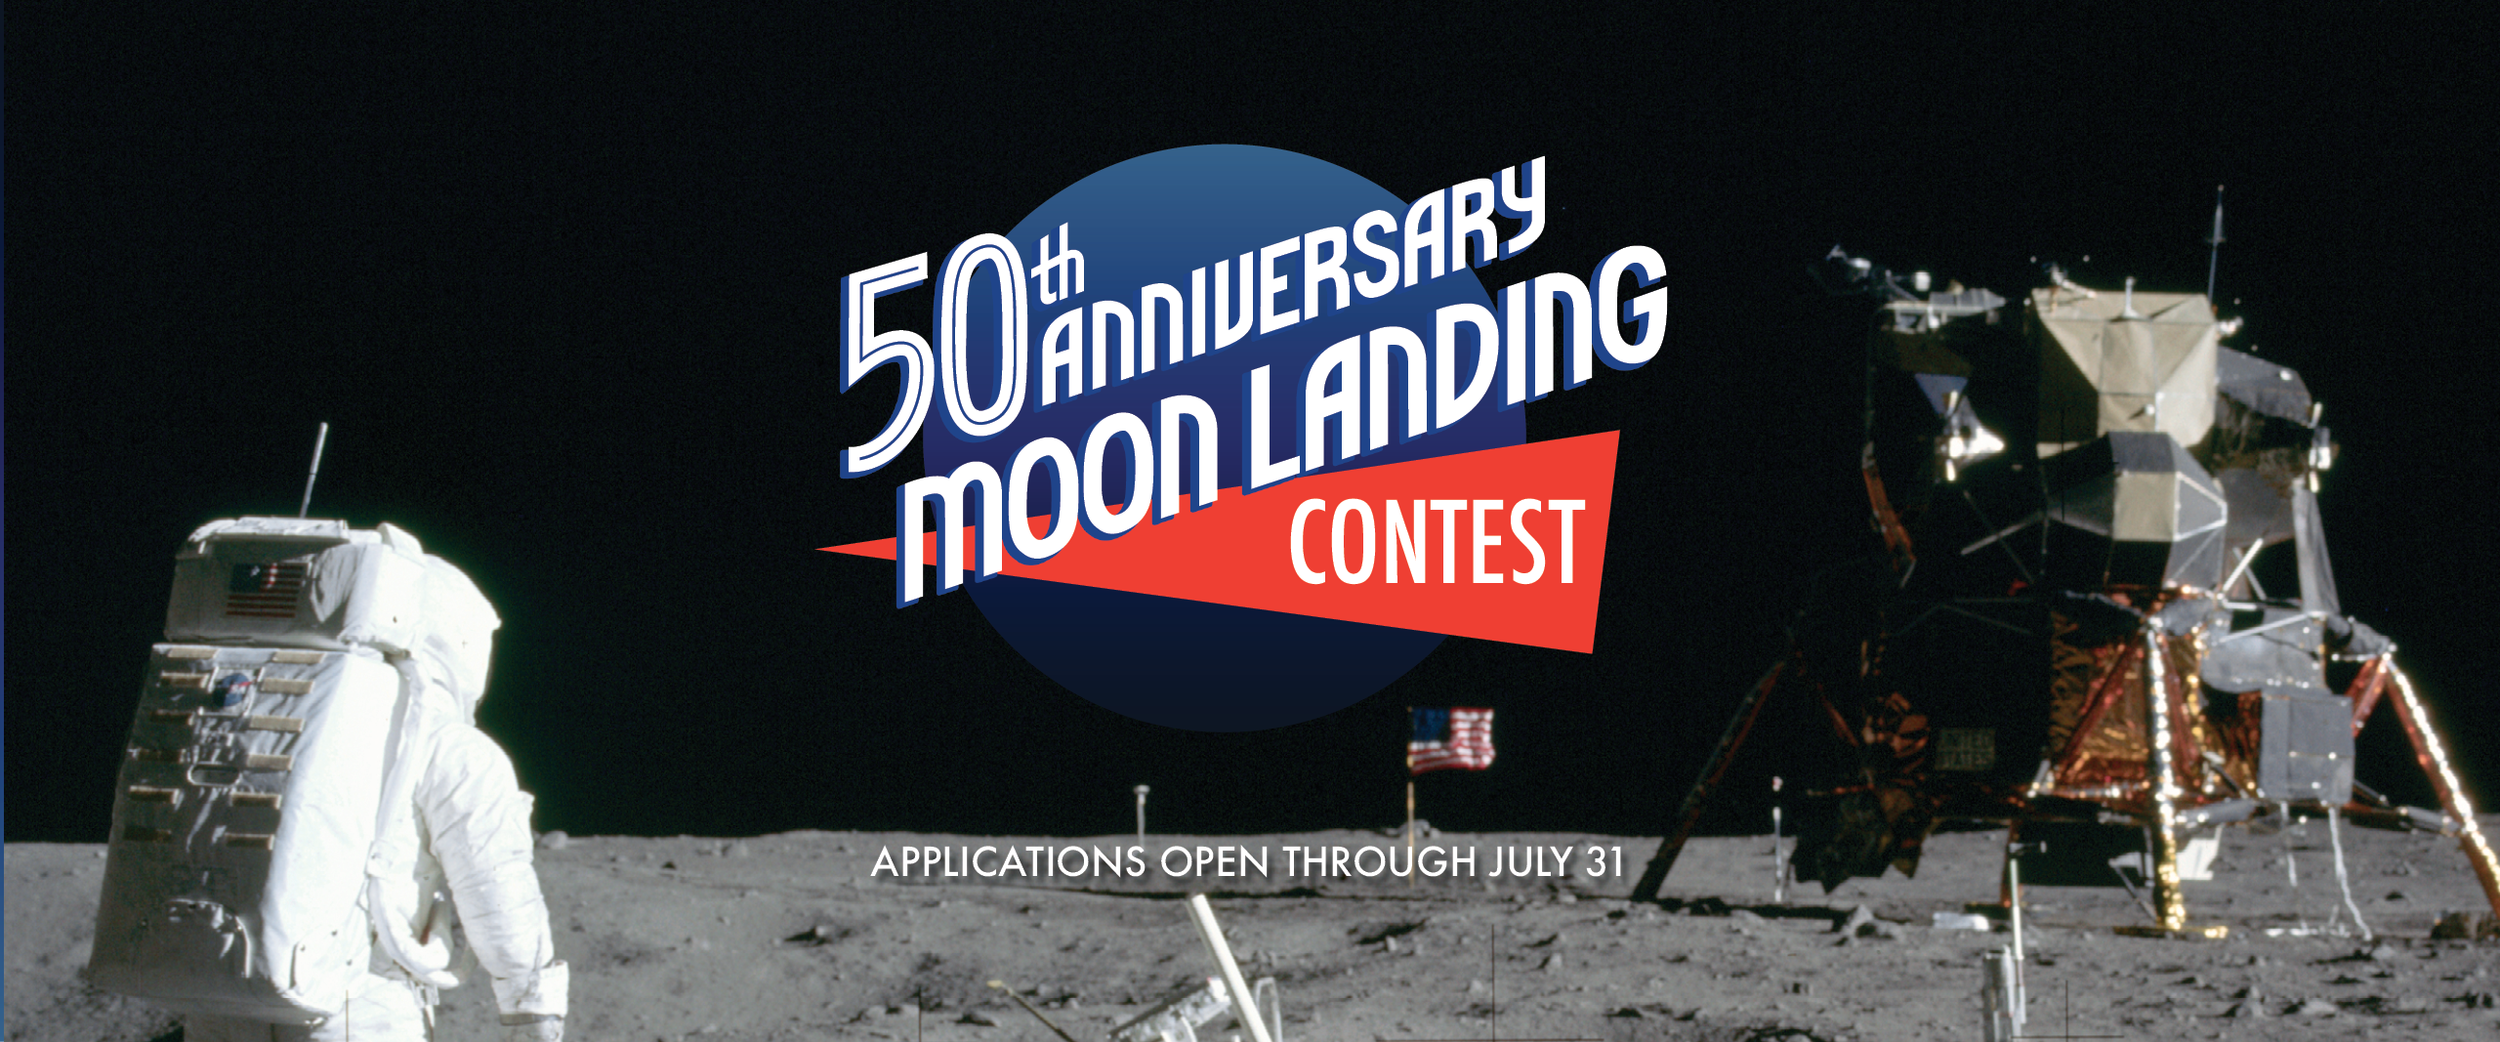 50th Anniversary Moon Landing Web 1920 x 800 EXTENDED.png